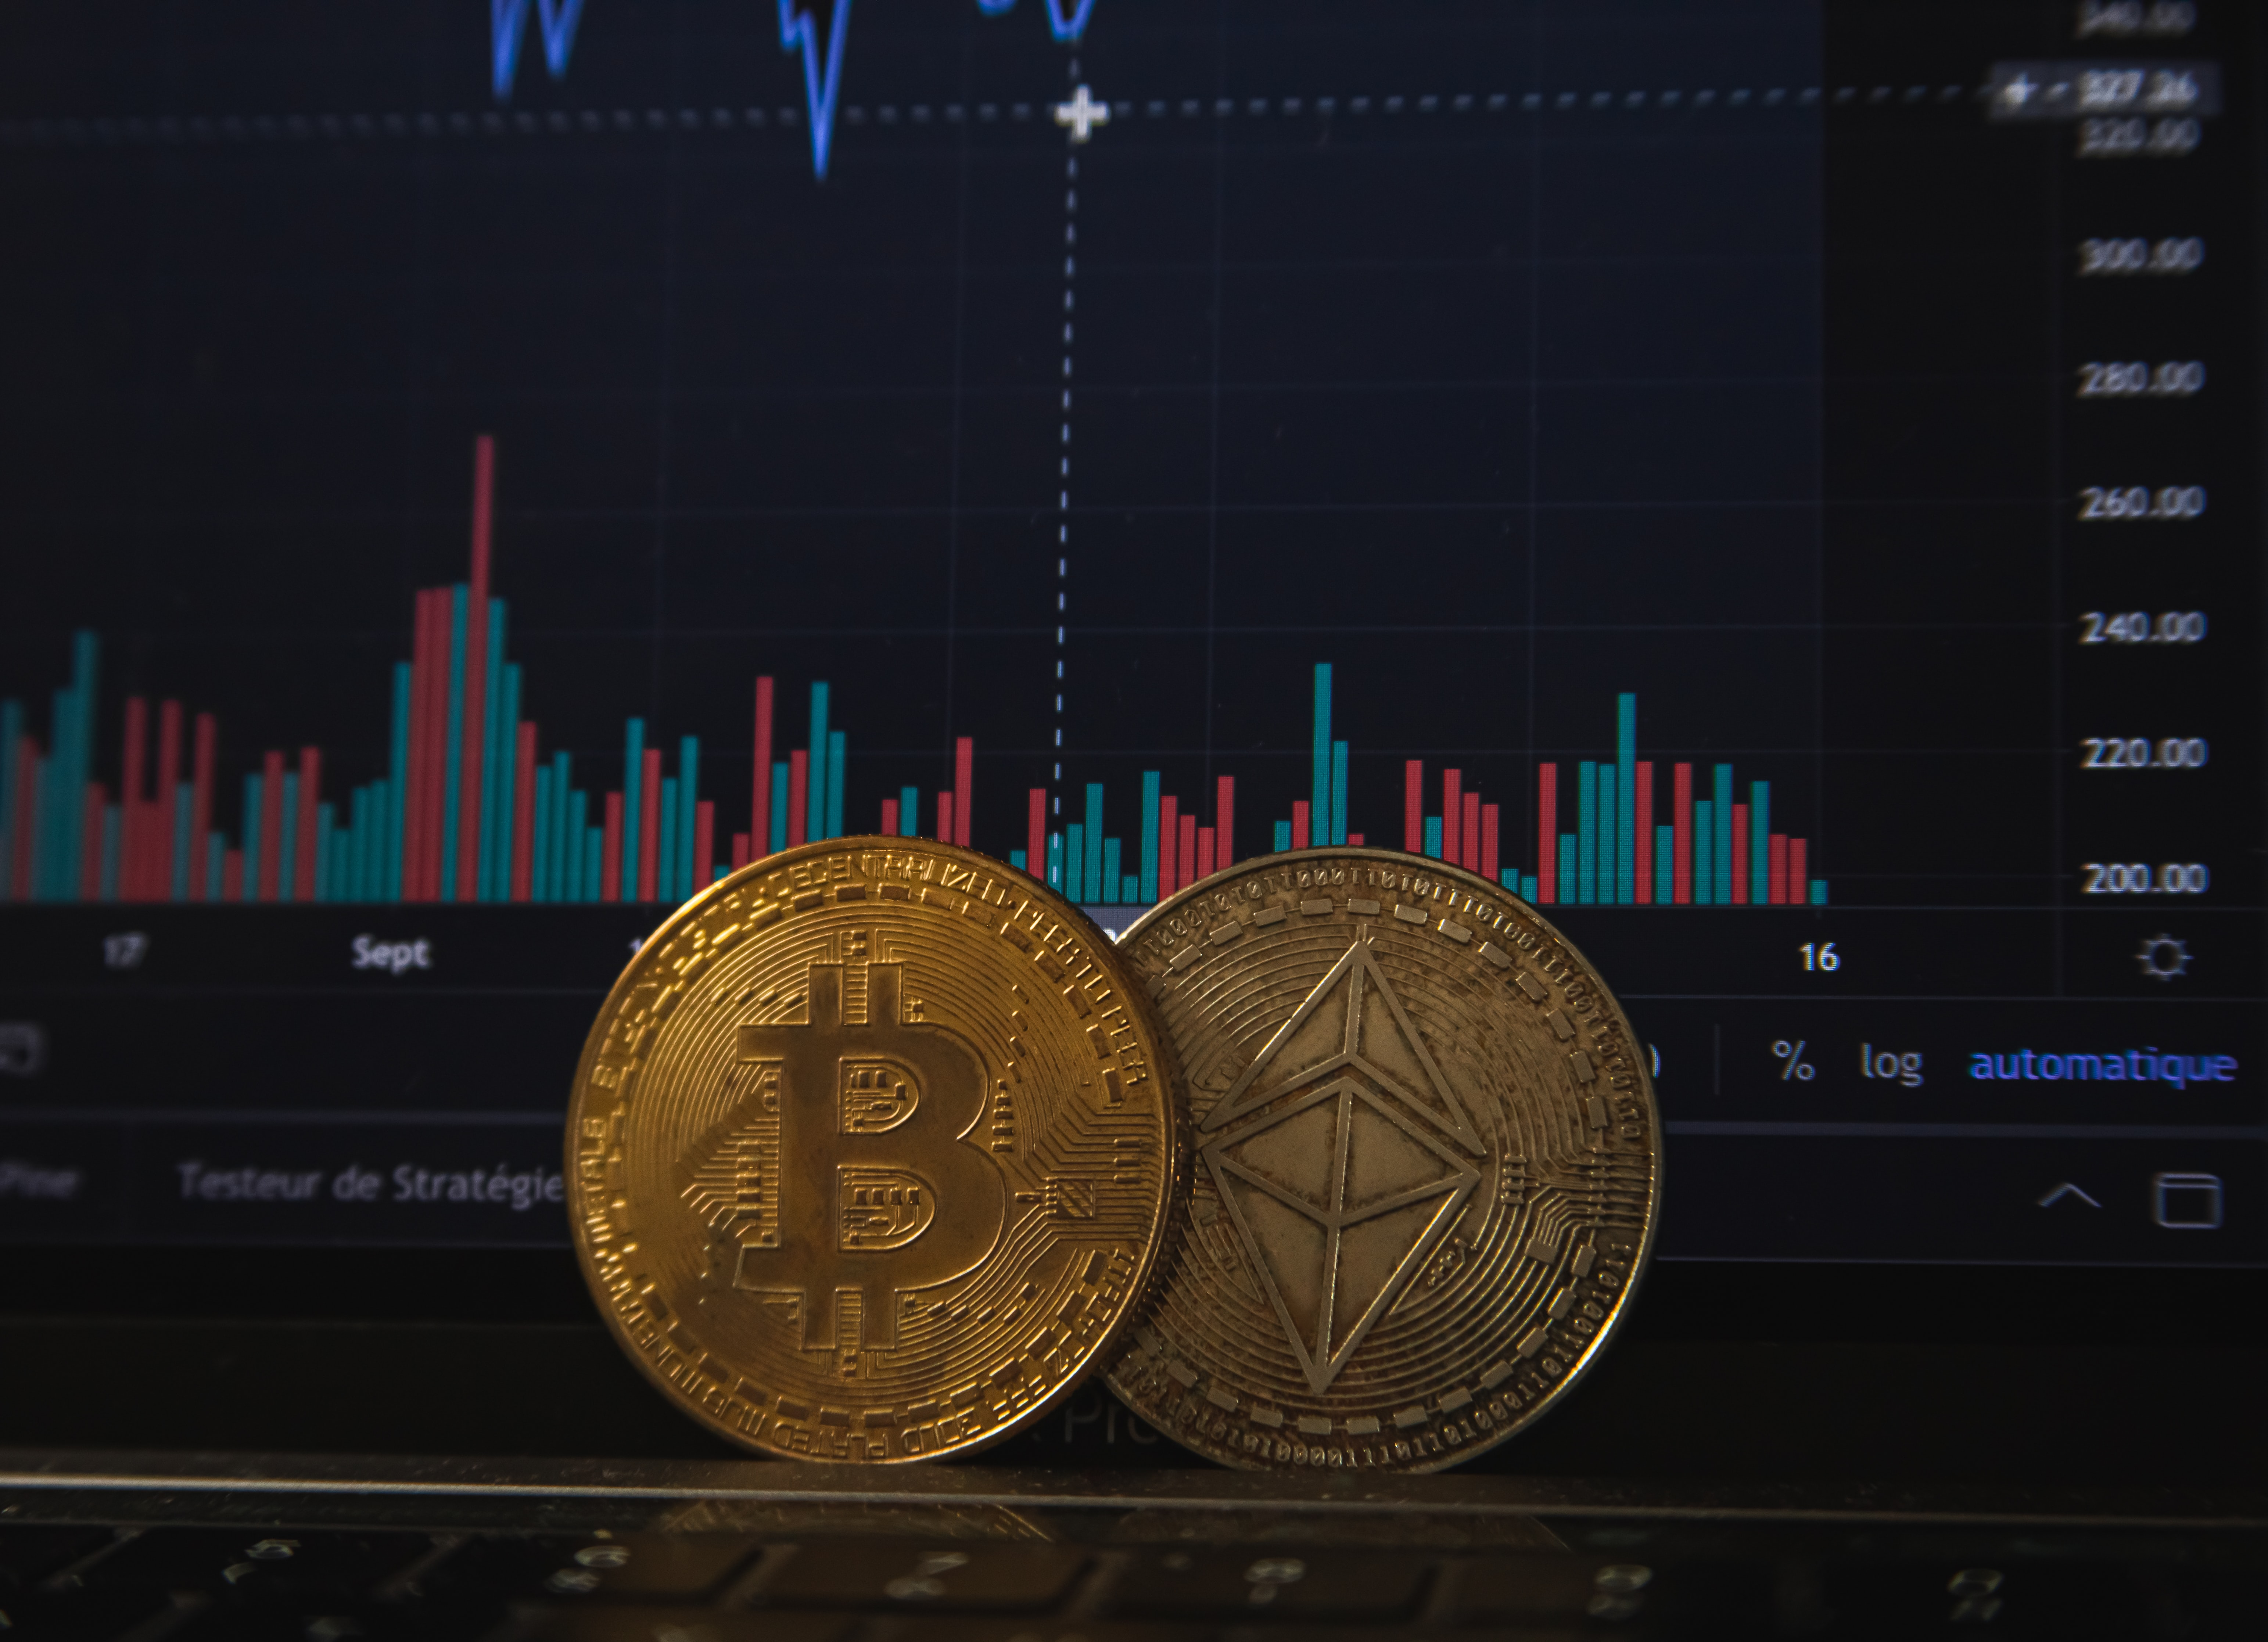 China tightens restrictions on Bitcoin; large-scale mining operations likely to be targetted